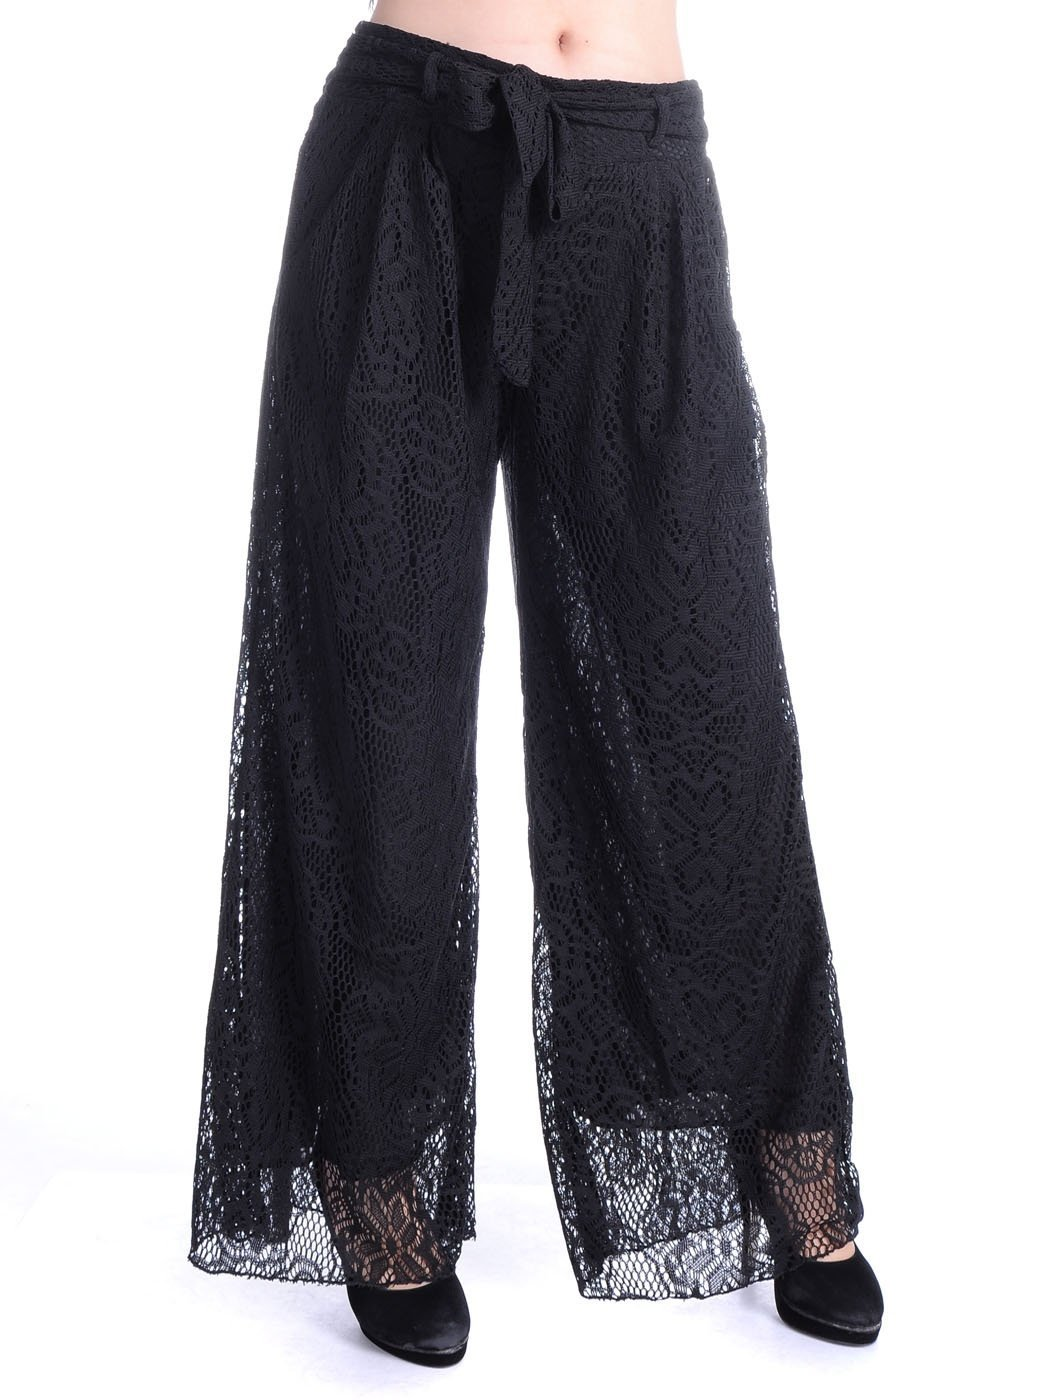 Anna-Kaci Womens Crochet Lace Boho Wide Leg High Waist Palazzo Trouser Pants, Black, Medium/Large